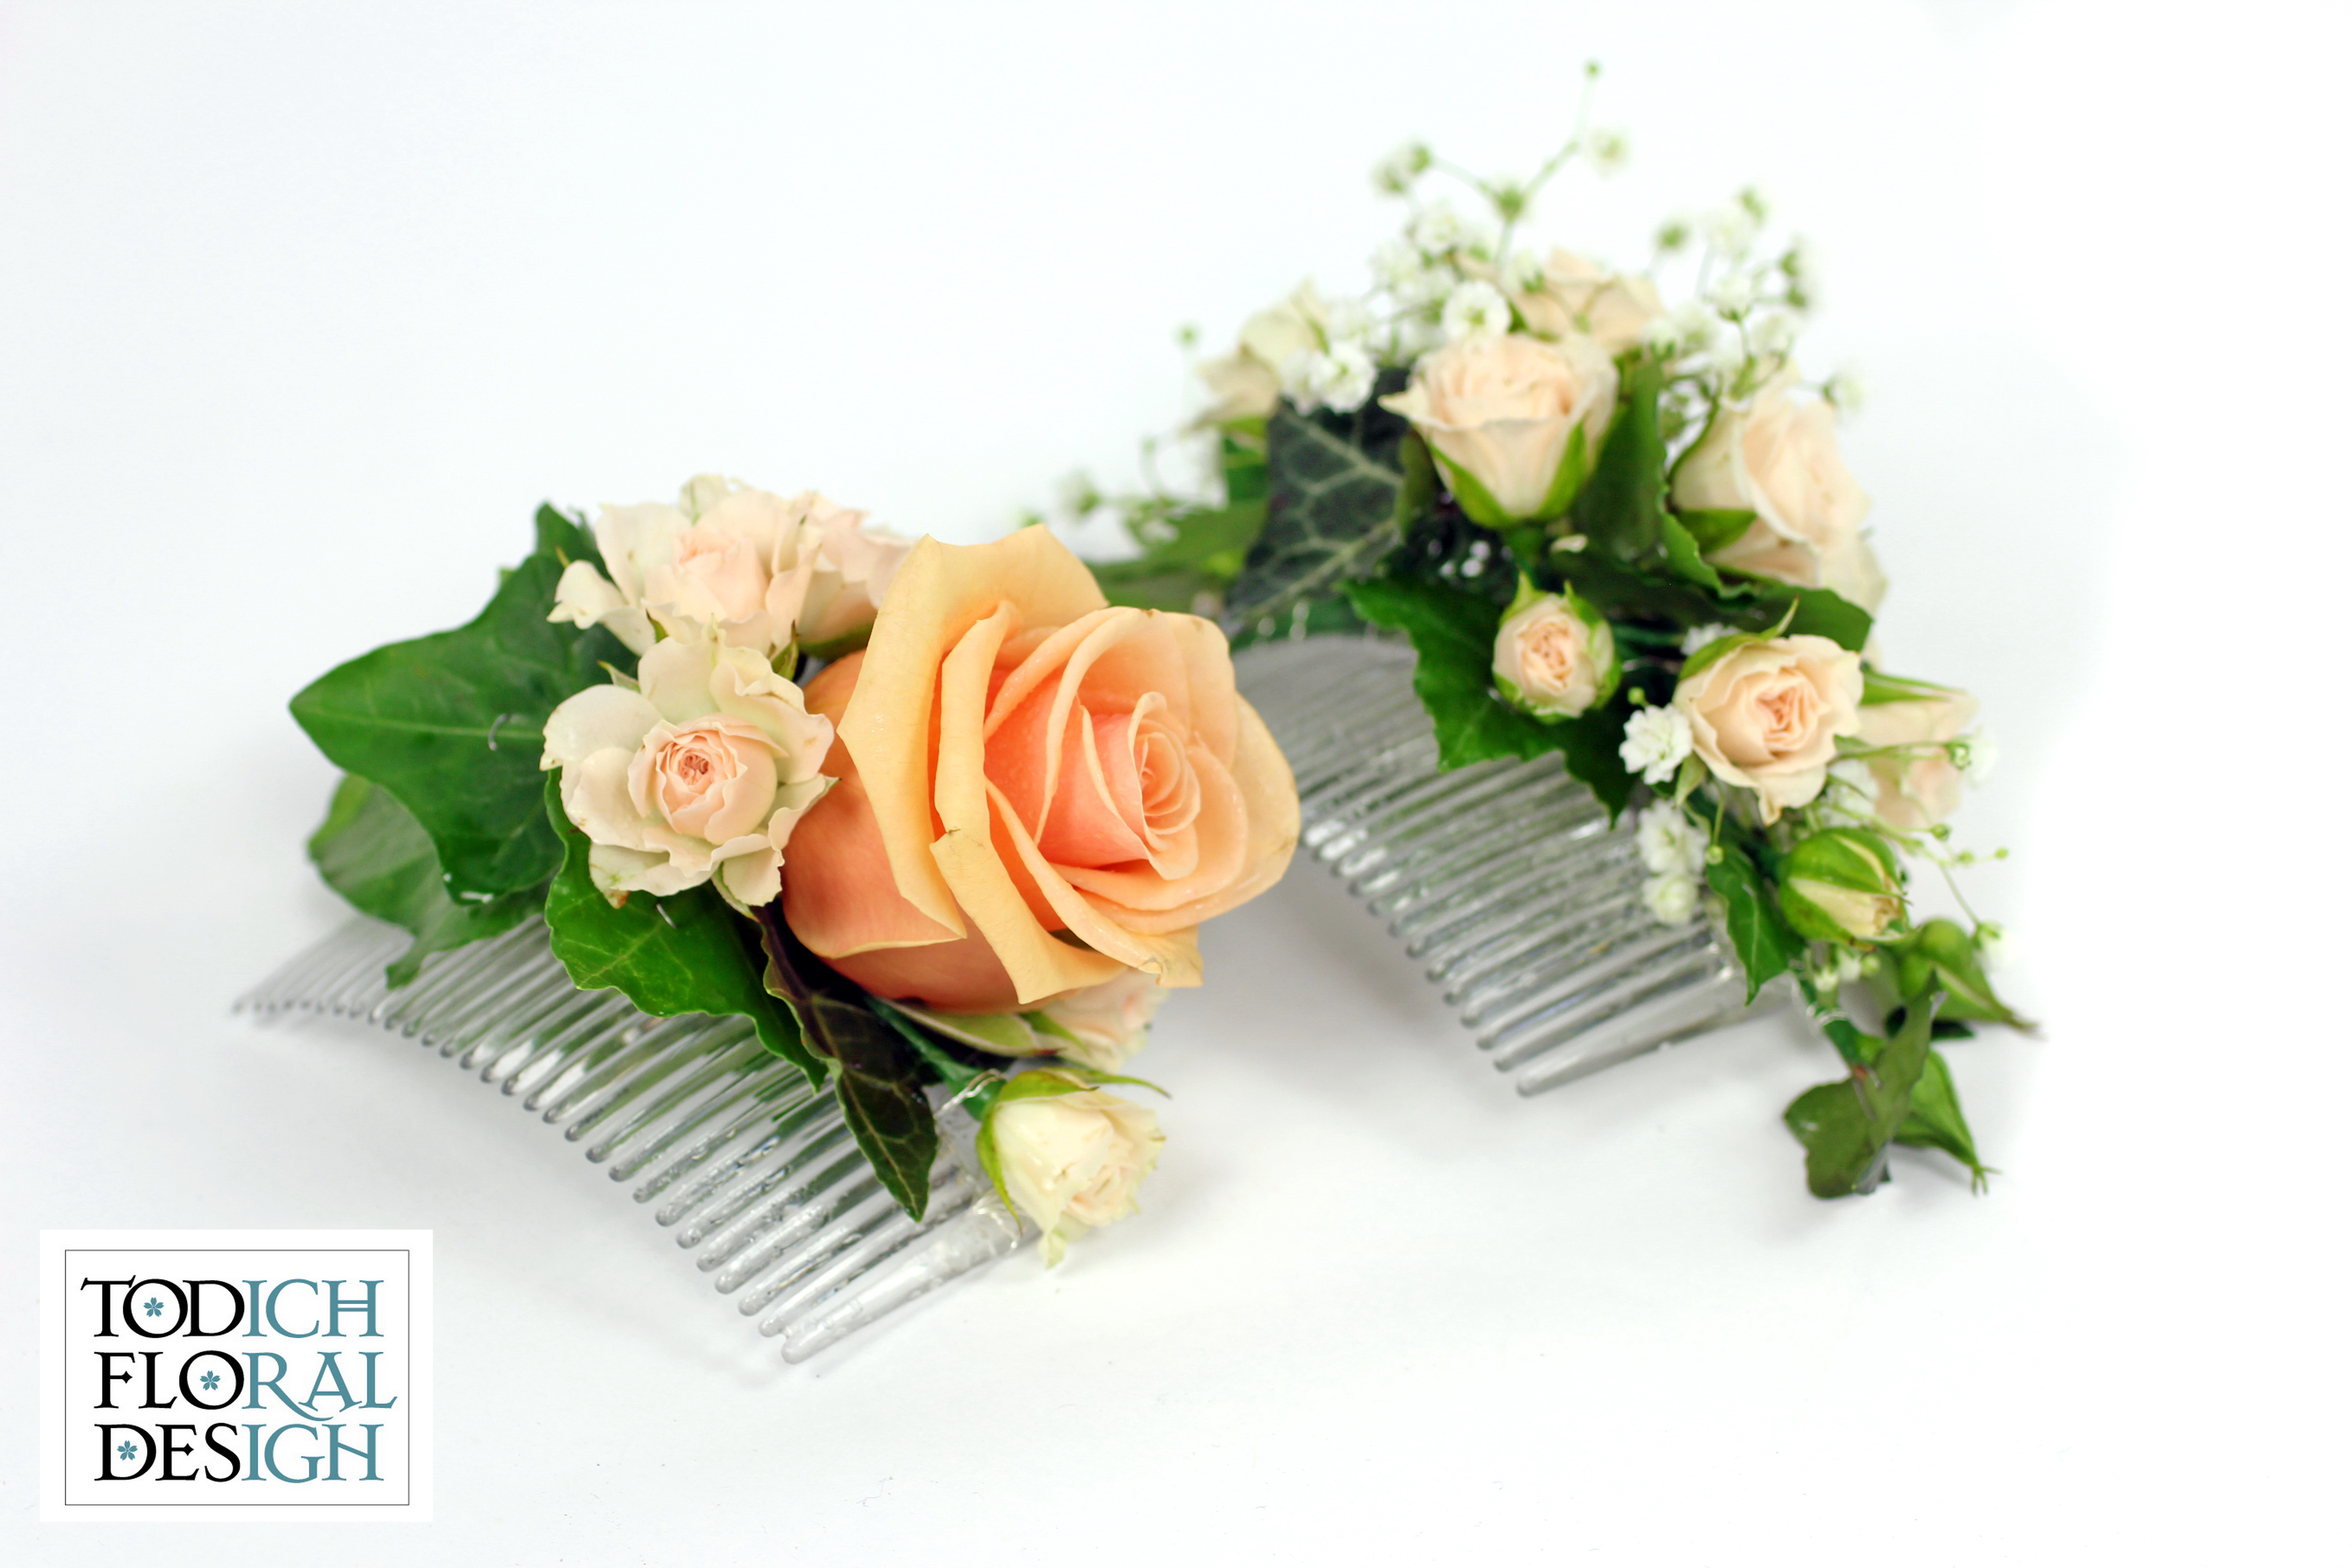 Wedding Flowers Blog Page 15 Of 23 Todich Floral Design